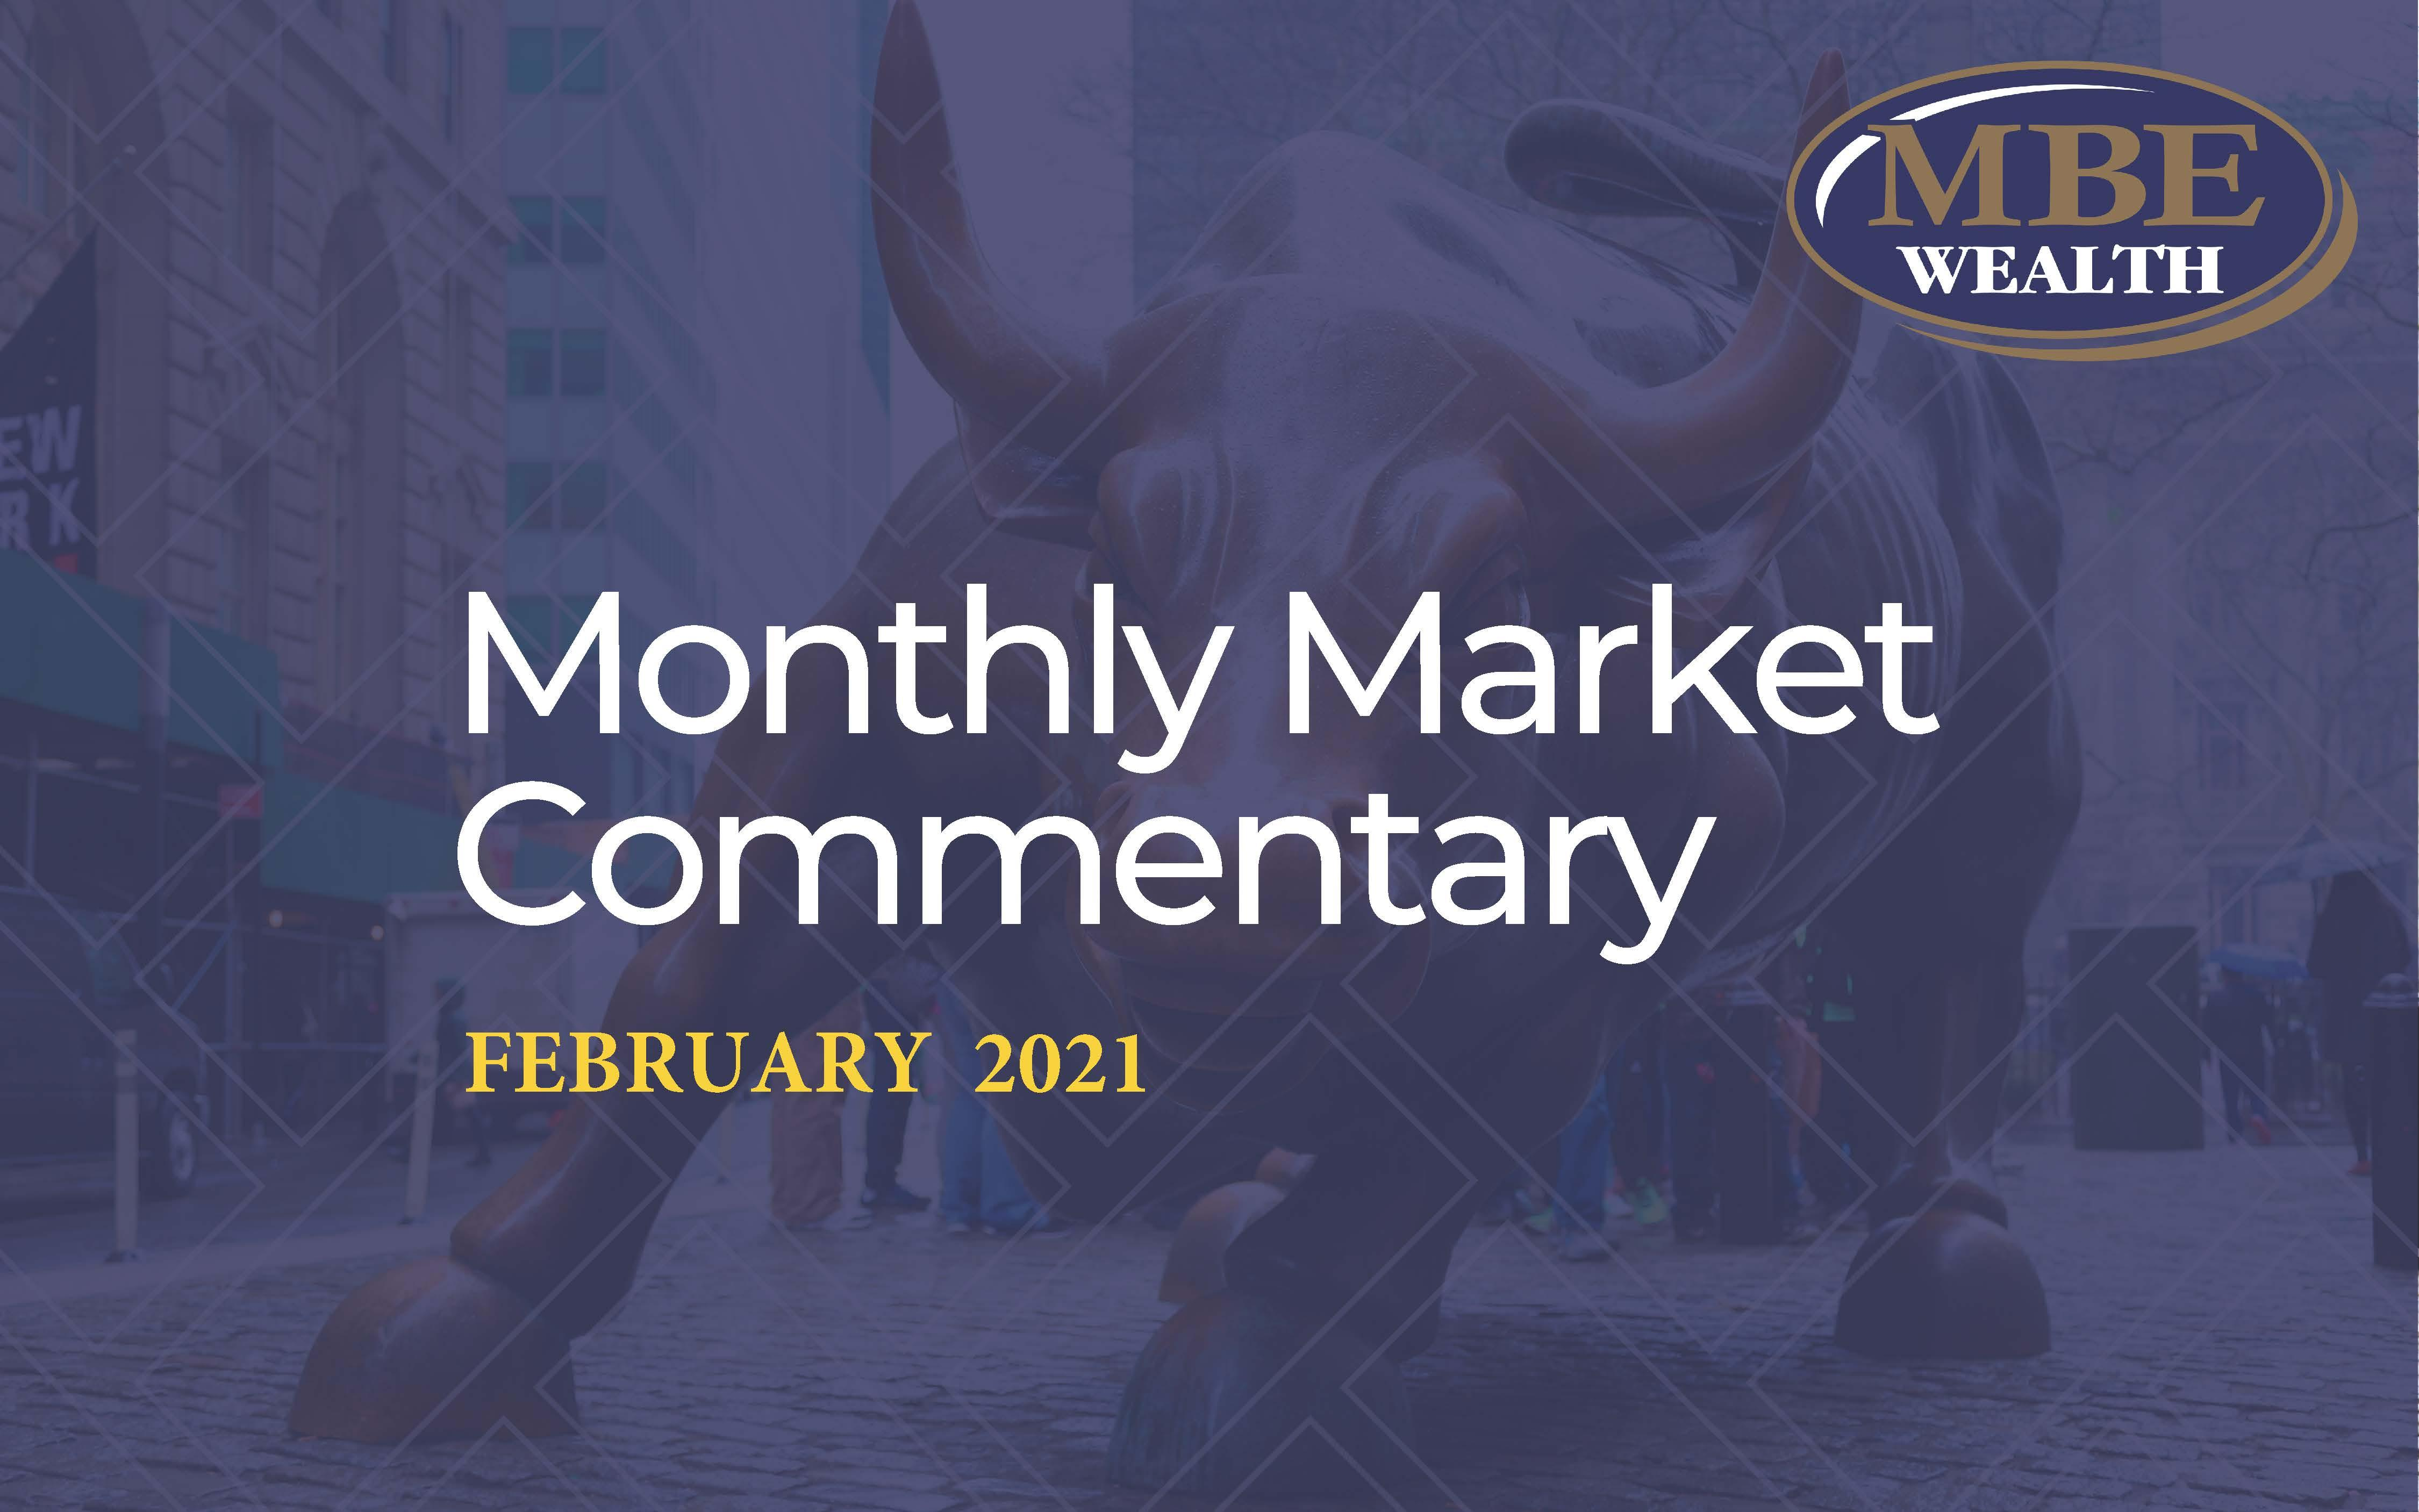 February 2021 MBE Wealth Market Commentary Thumbnail